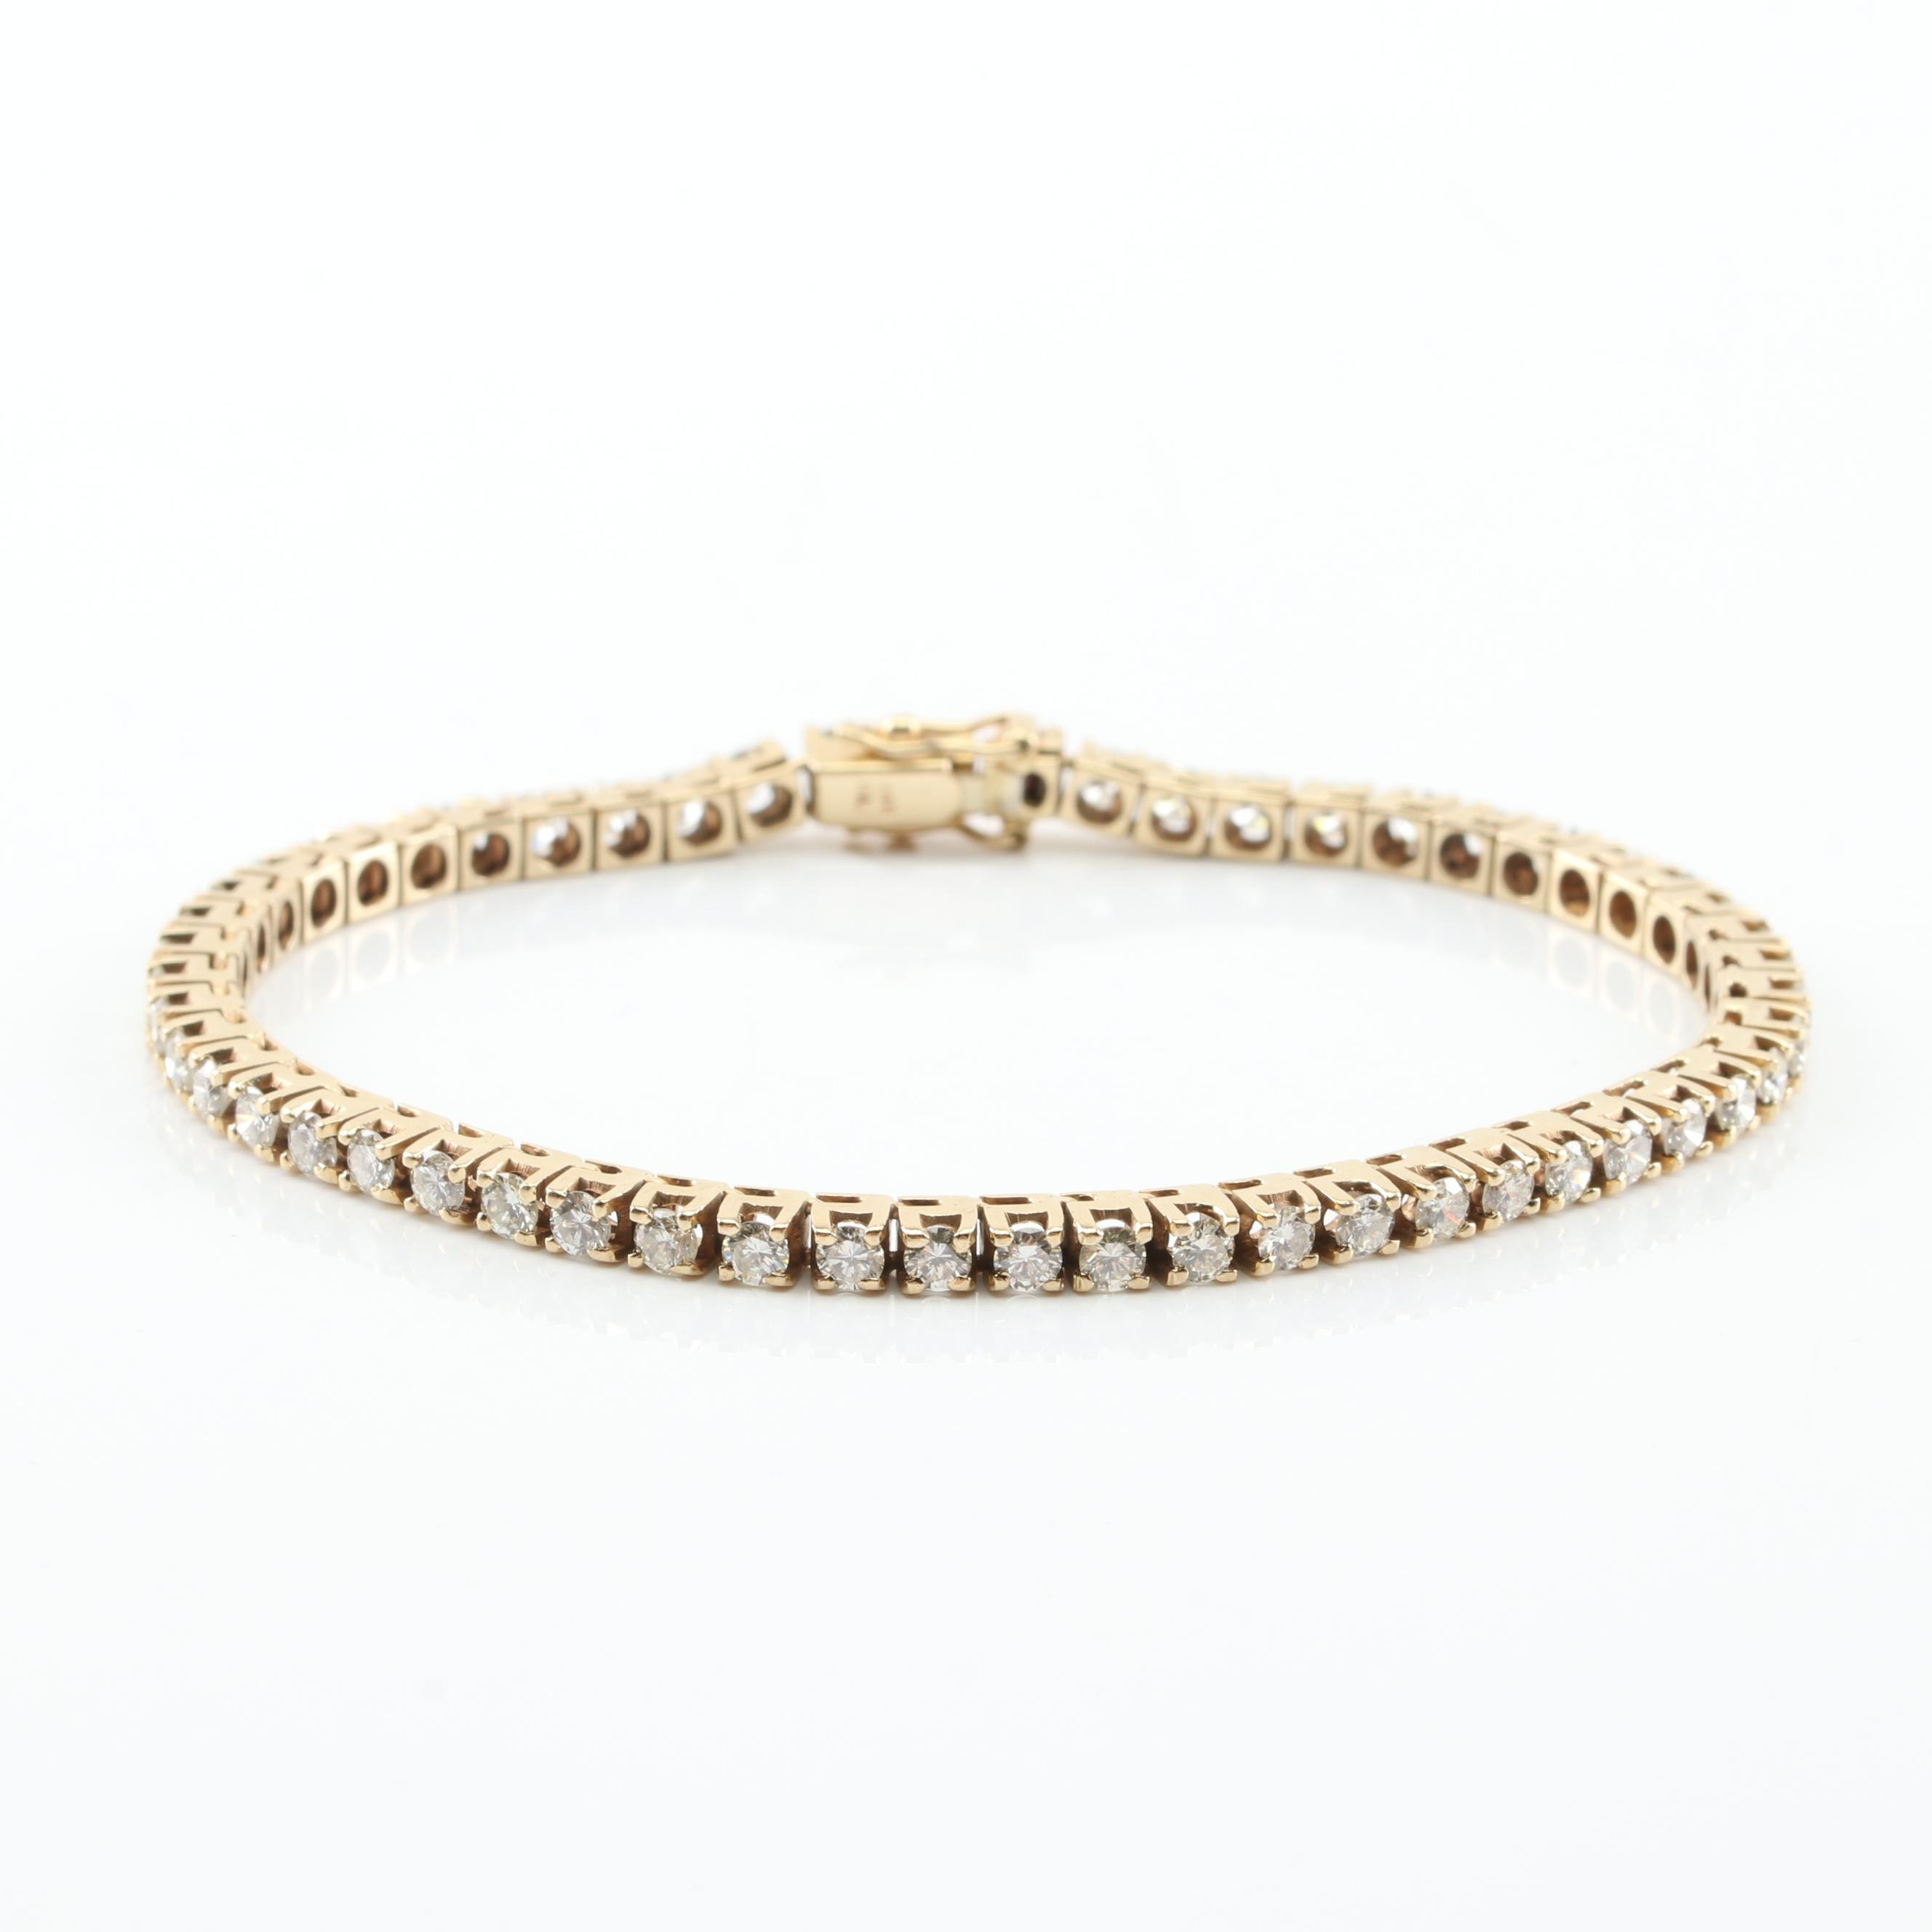 14K Yellow Gold 4.16 CTW Diamond Tennis Bracelet